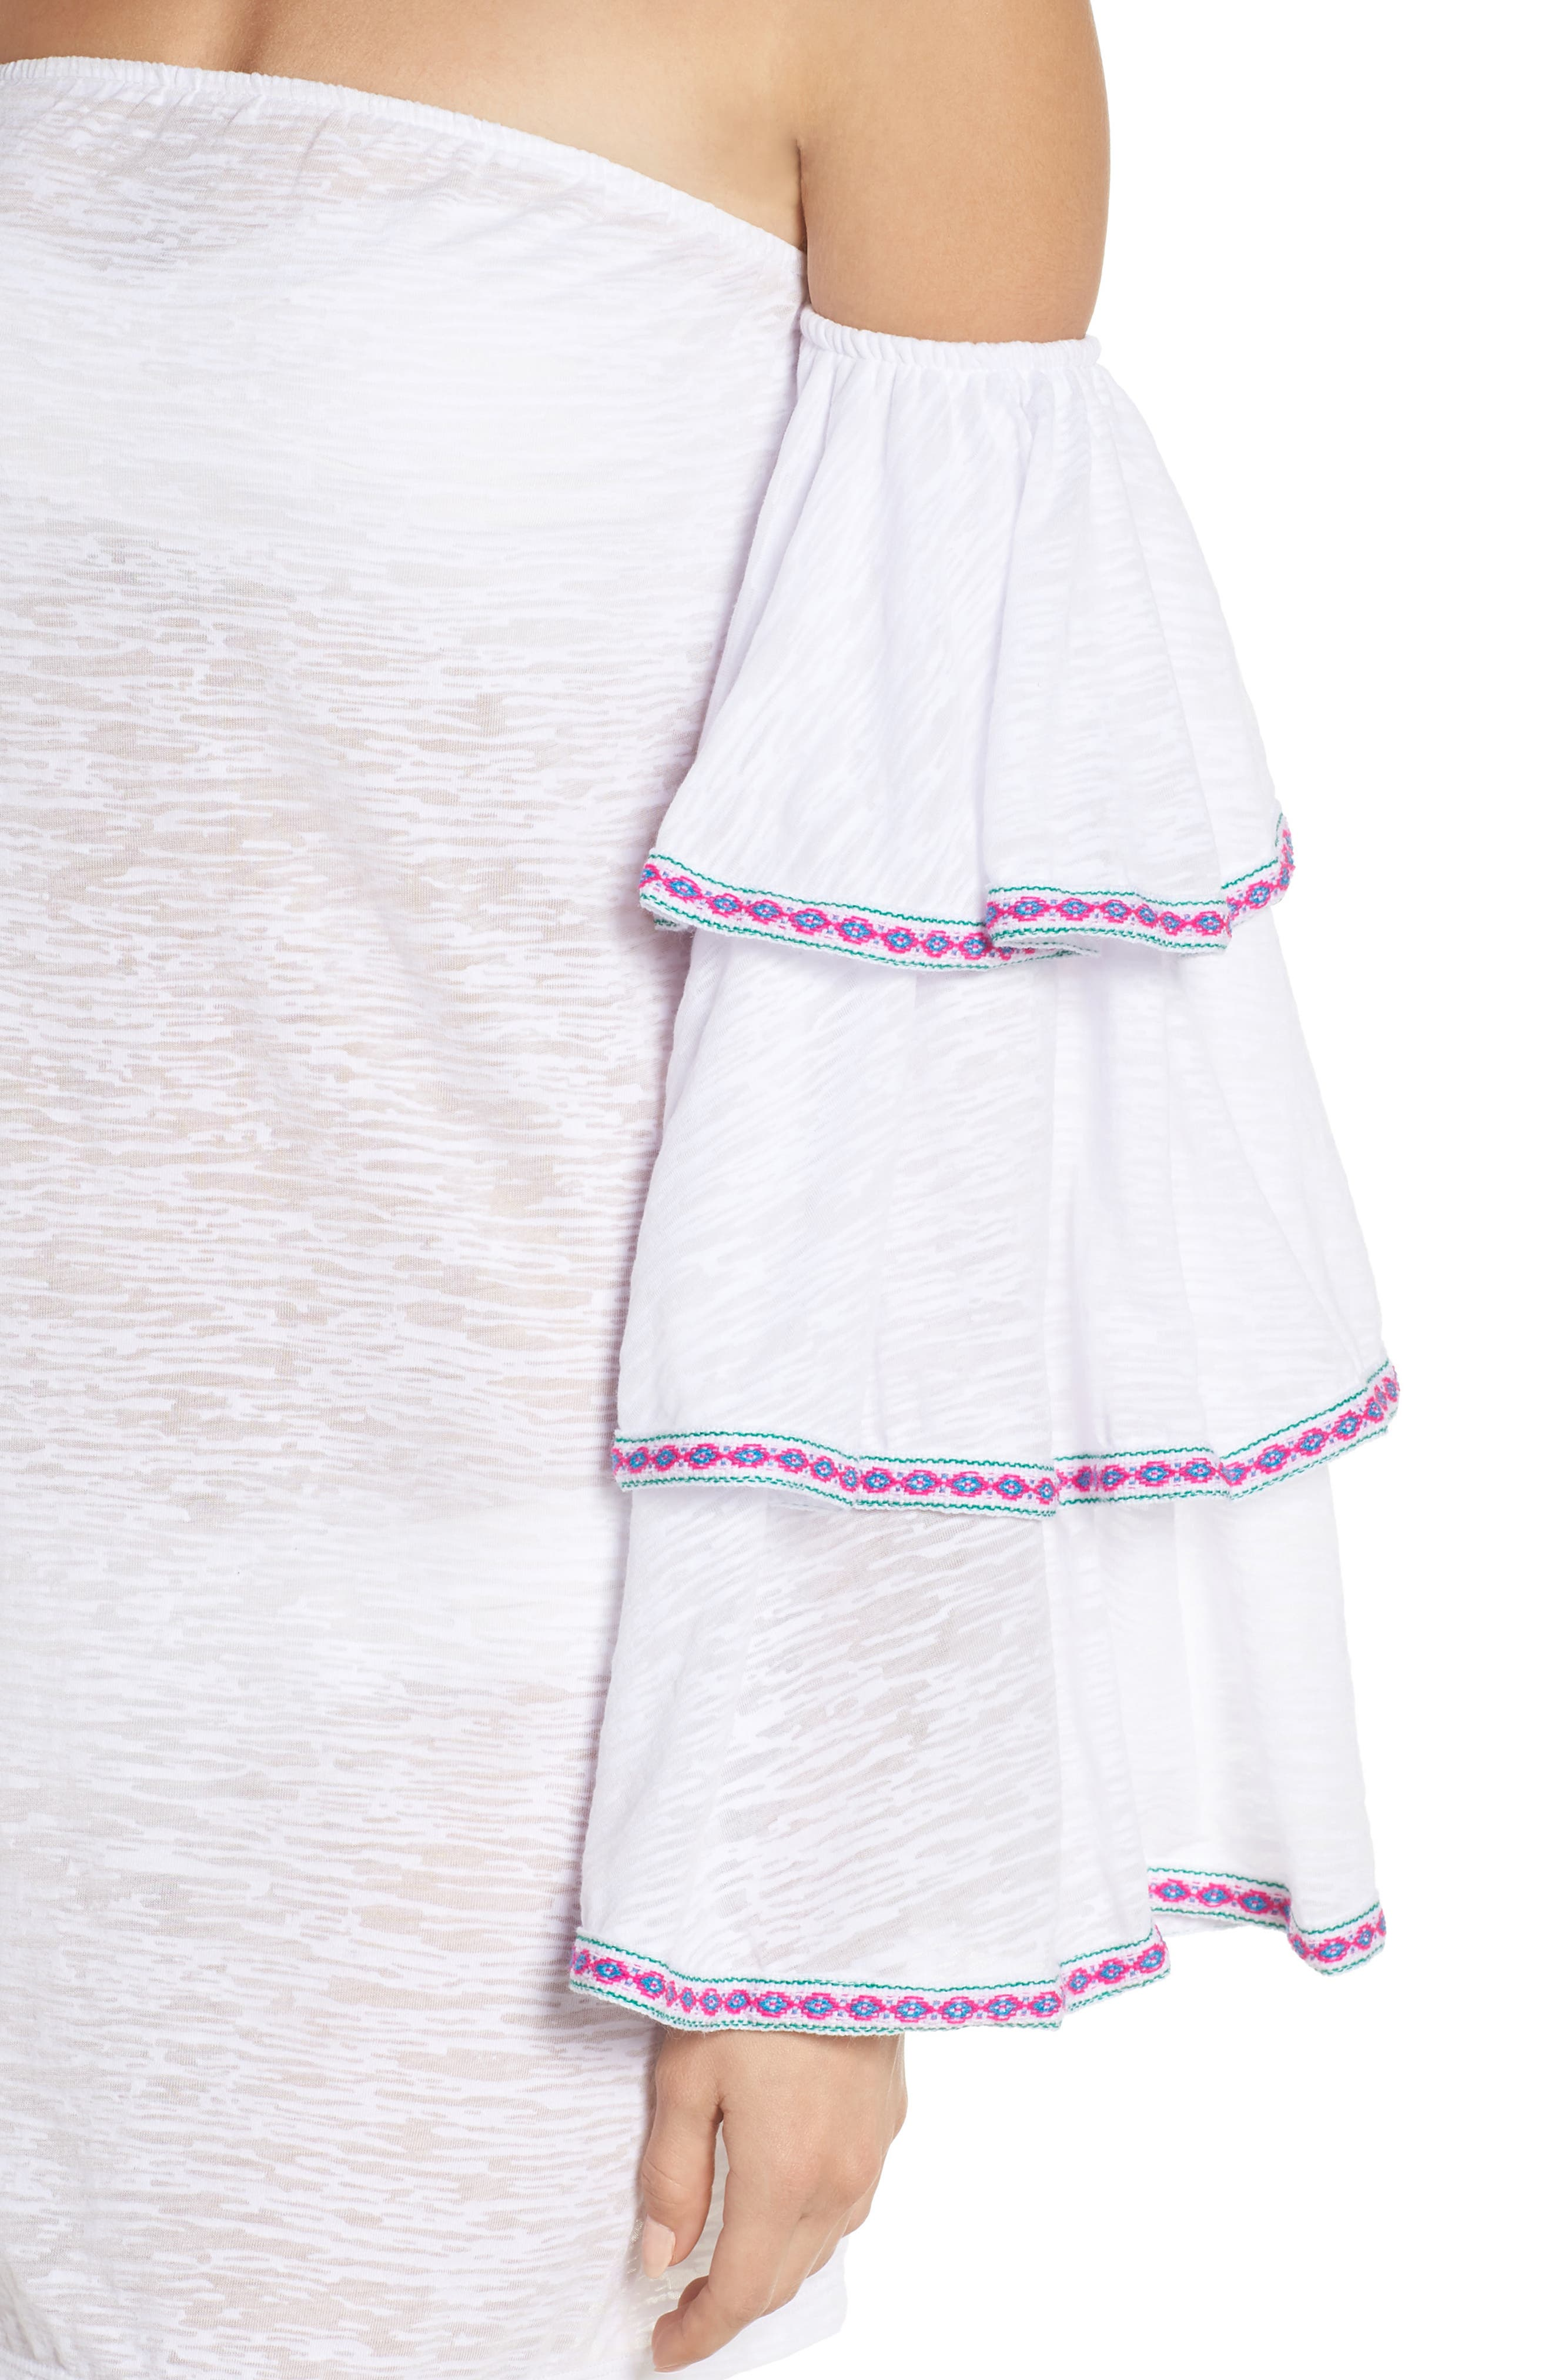 Off the Shoulder Cover-Up Dress,                             Alternate thumbnail 4, color,                             White